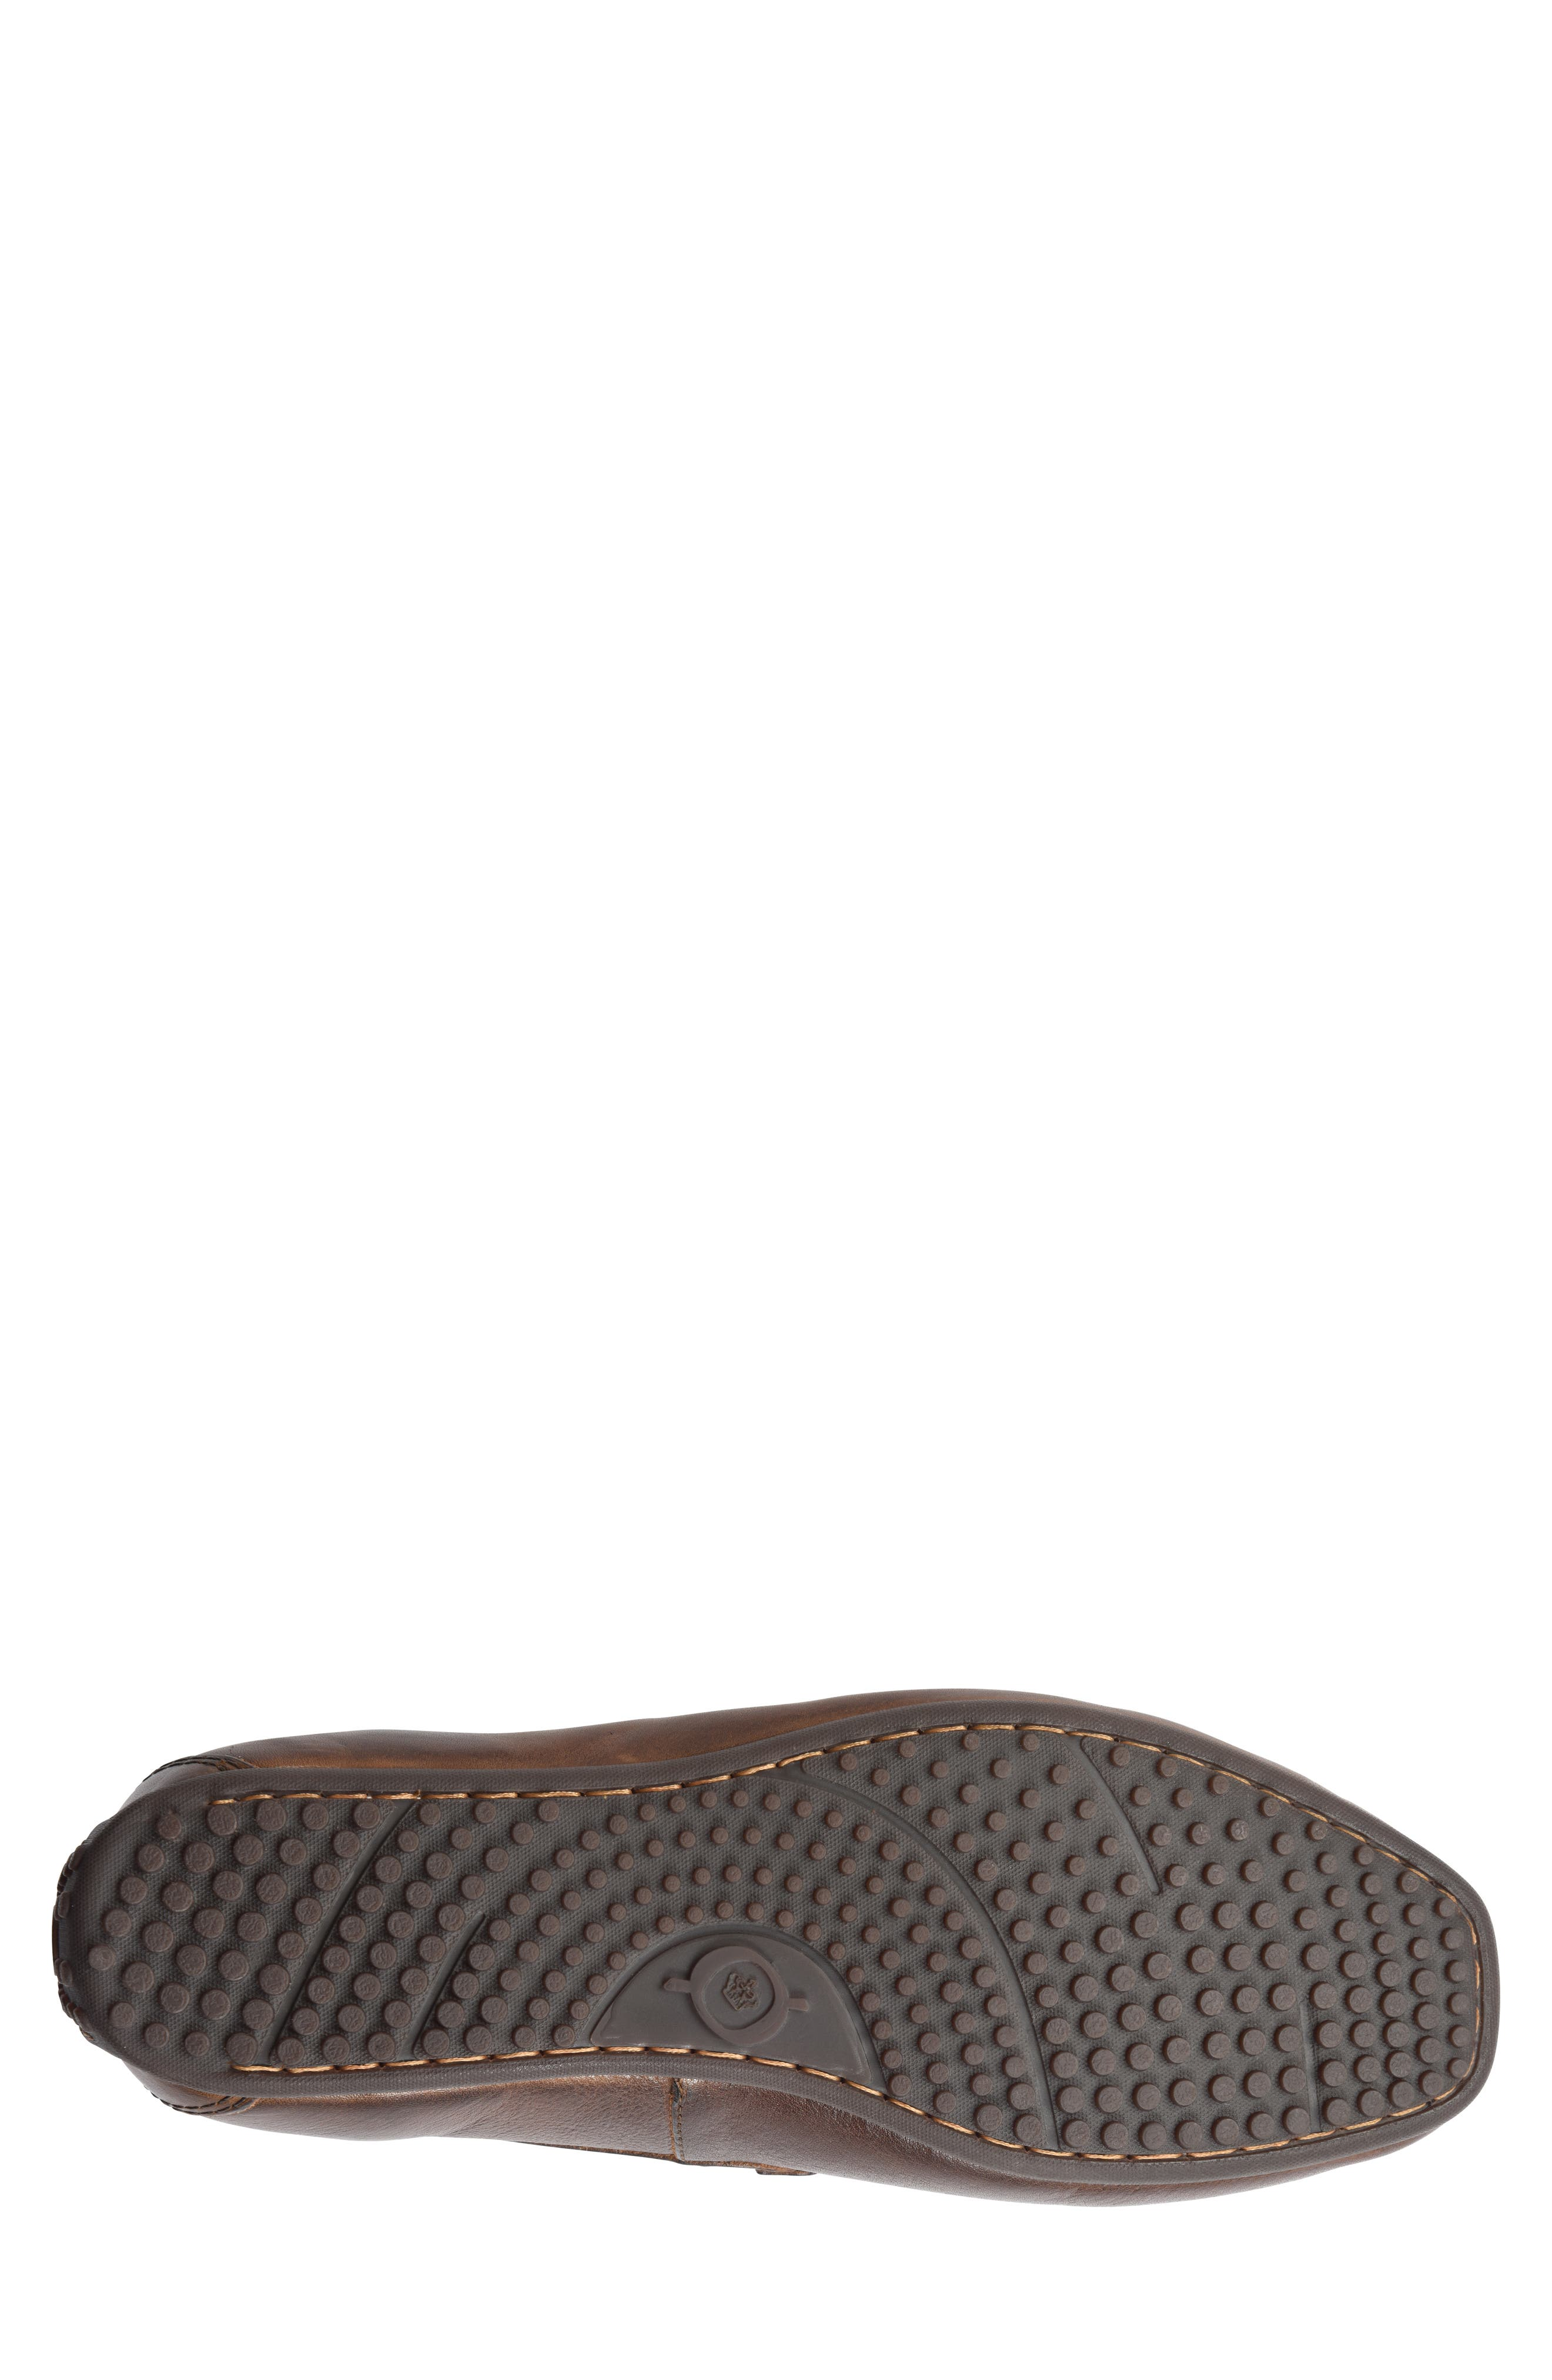 Ratner Driving Loafer,                             Alternate thumbnail 6, color,                             BROWN LEATHER